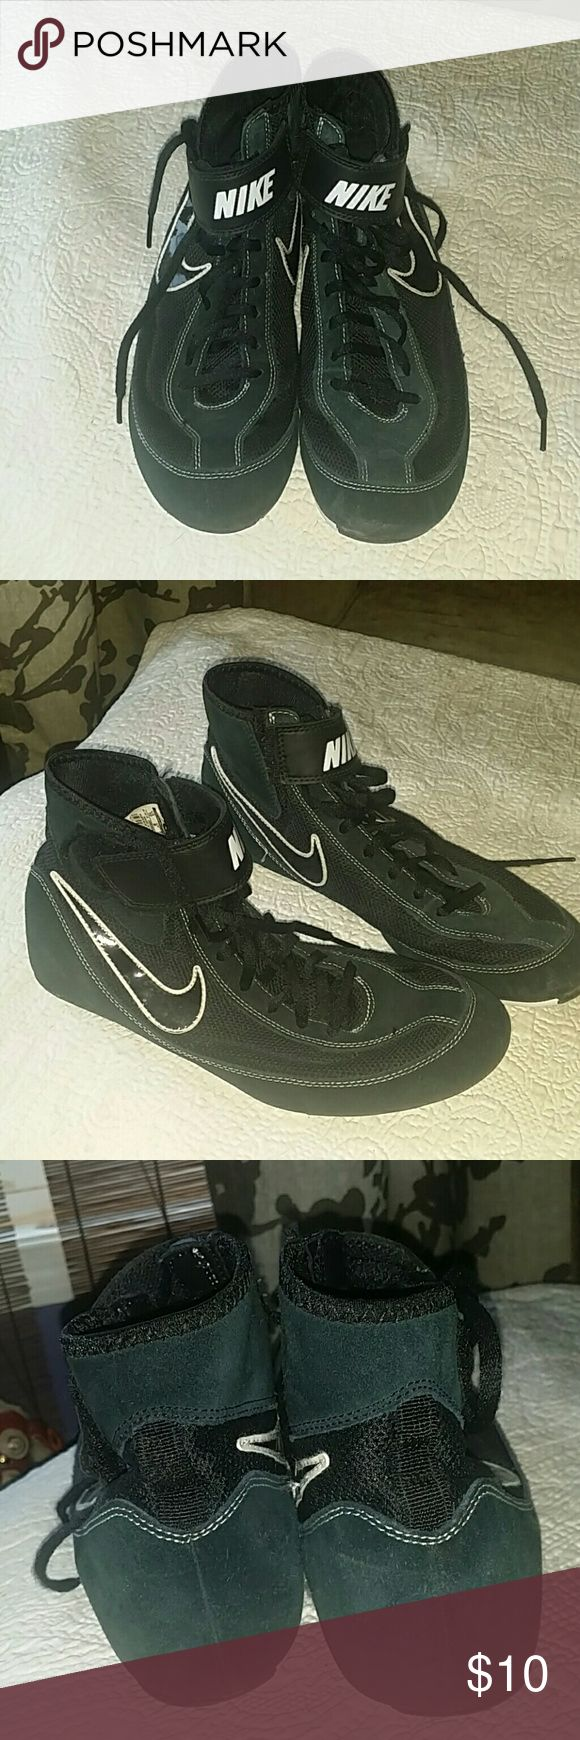 Nike Wrestling shoes Black w/white wrestling shoes. Worn, but I good condition. Nike Shoes Athletic Shoes